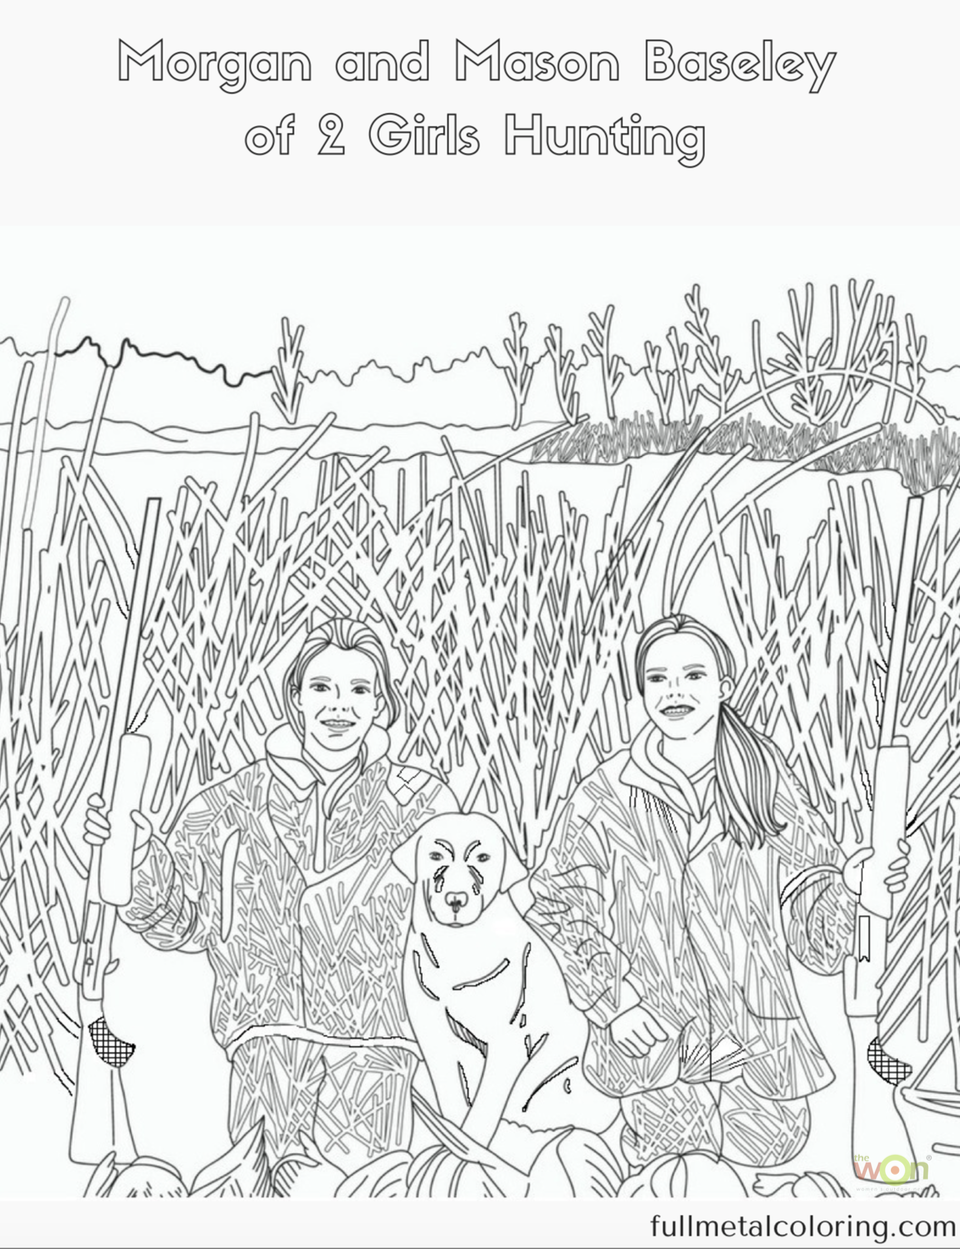 2 girls hunting coloring page